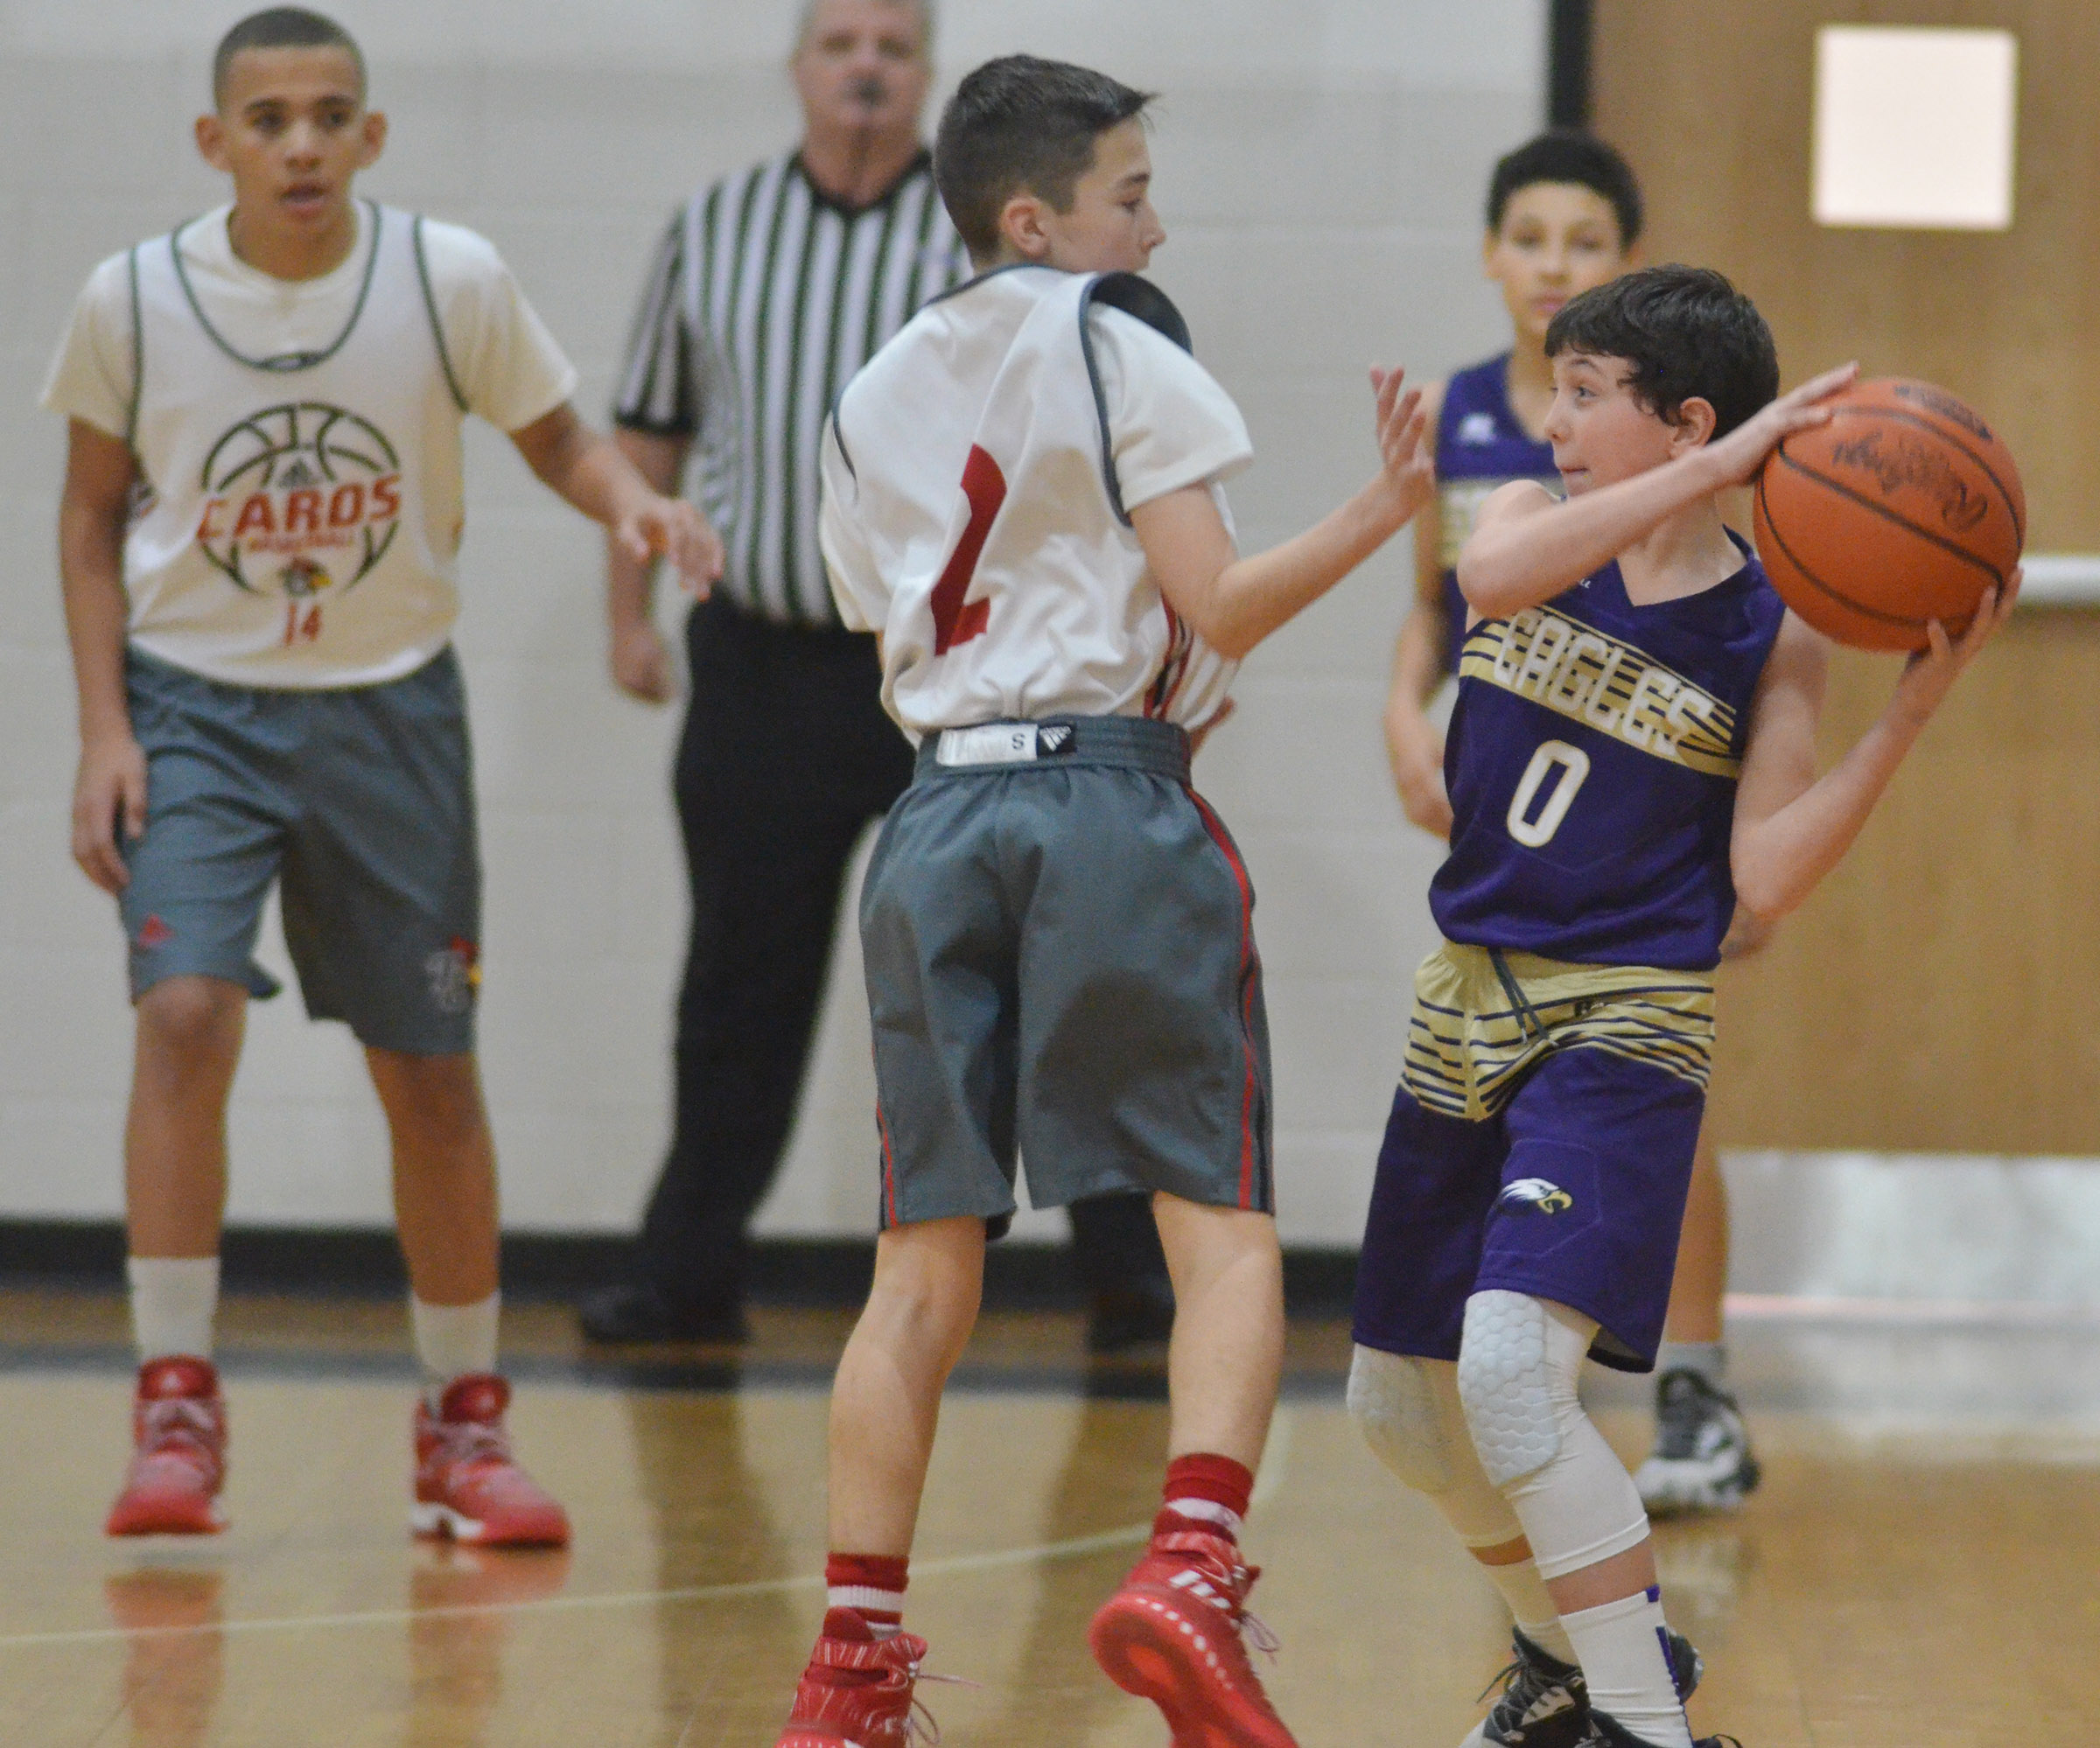 CMS seventh-grader Dakota Harris protects the ball.